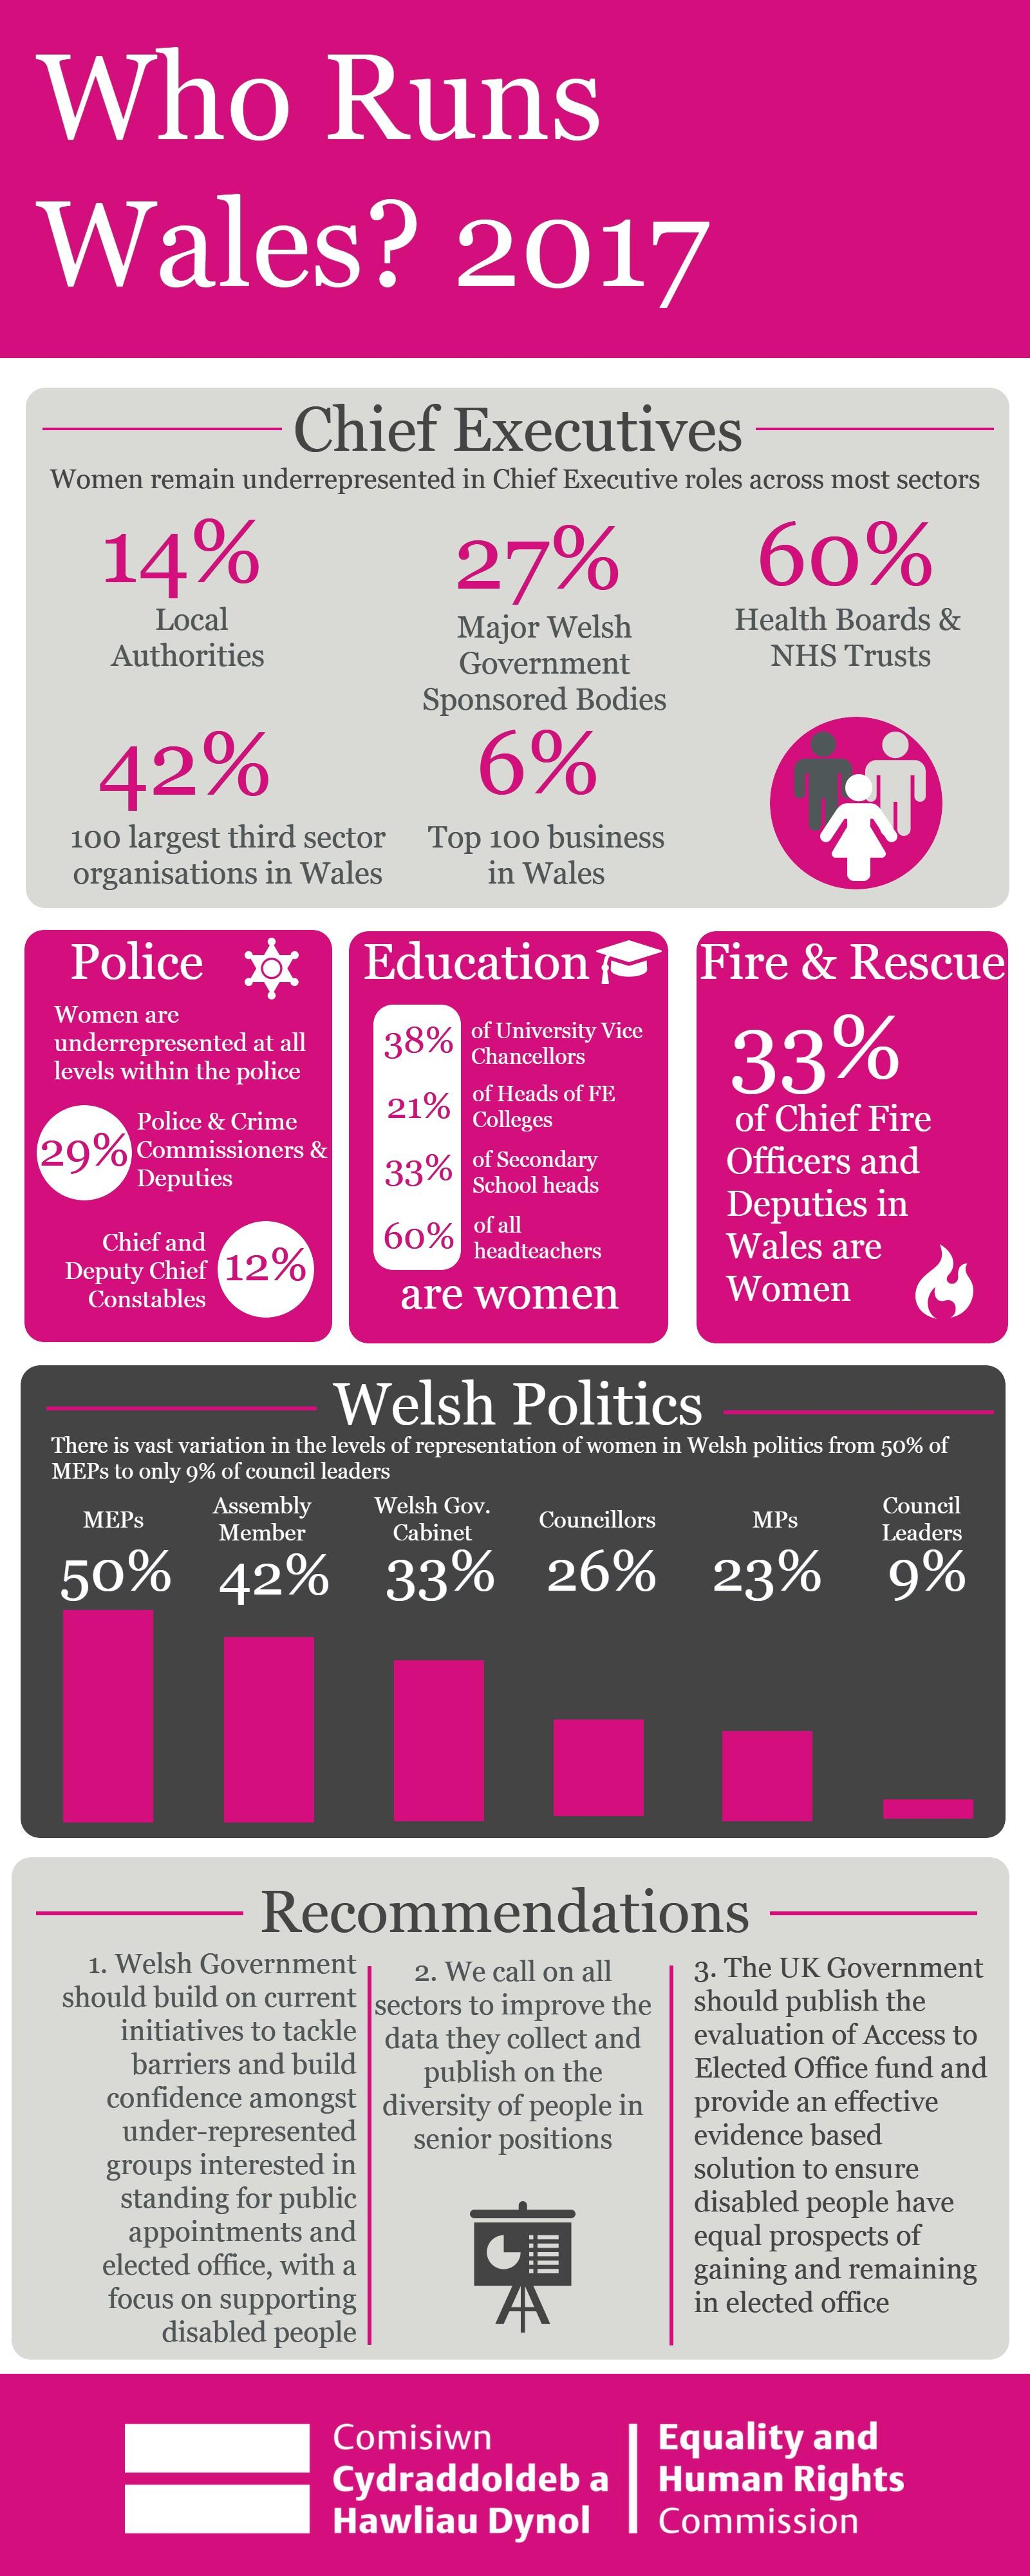 Who runs Wales? 2017 infographic